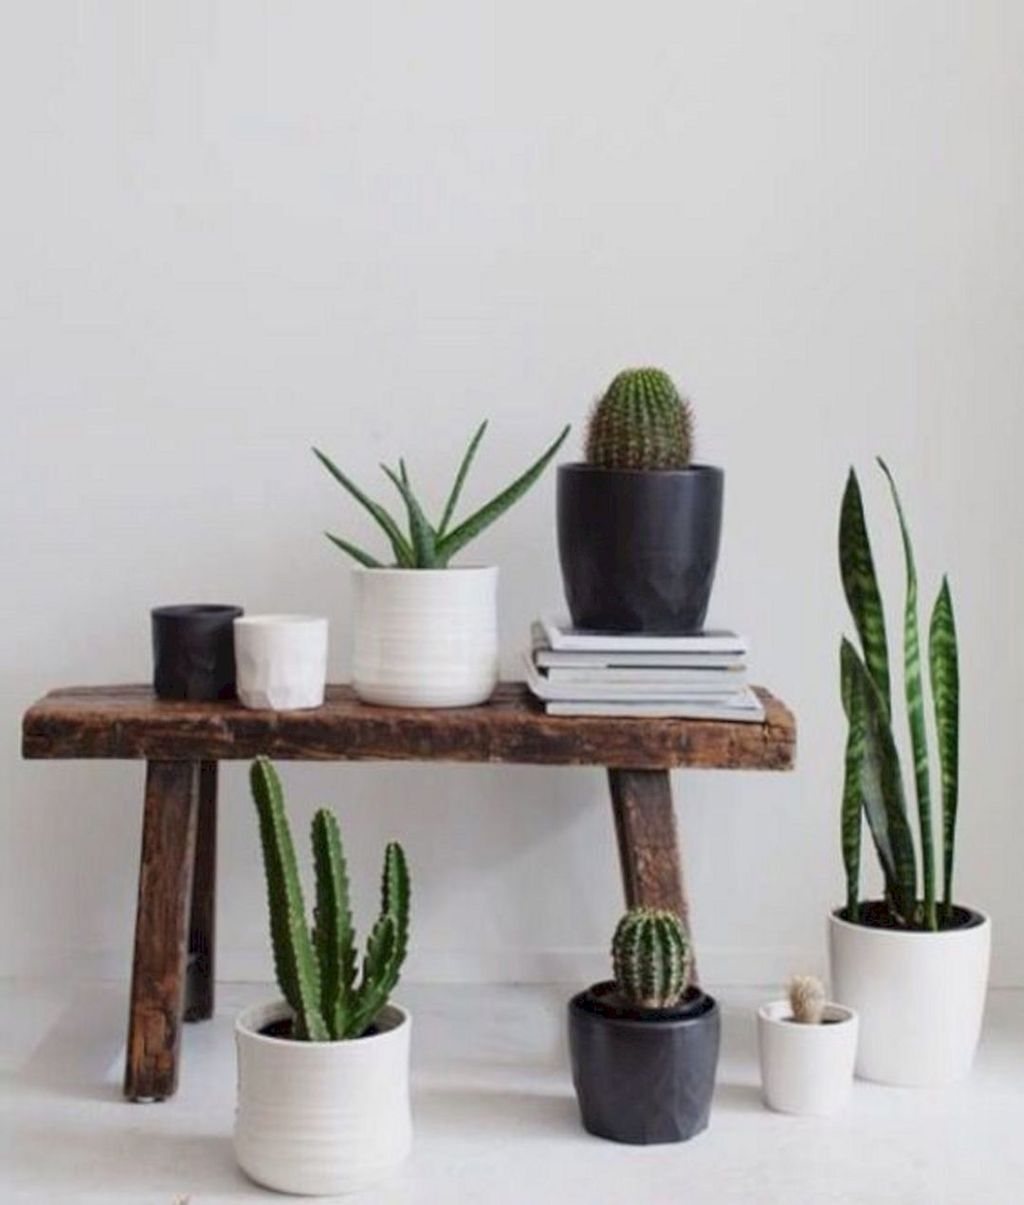 20 Cool Small Cactus Ideas For Interior Home Design Trendedecor